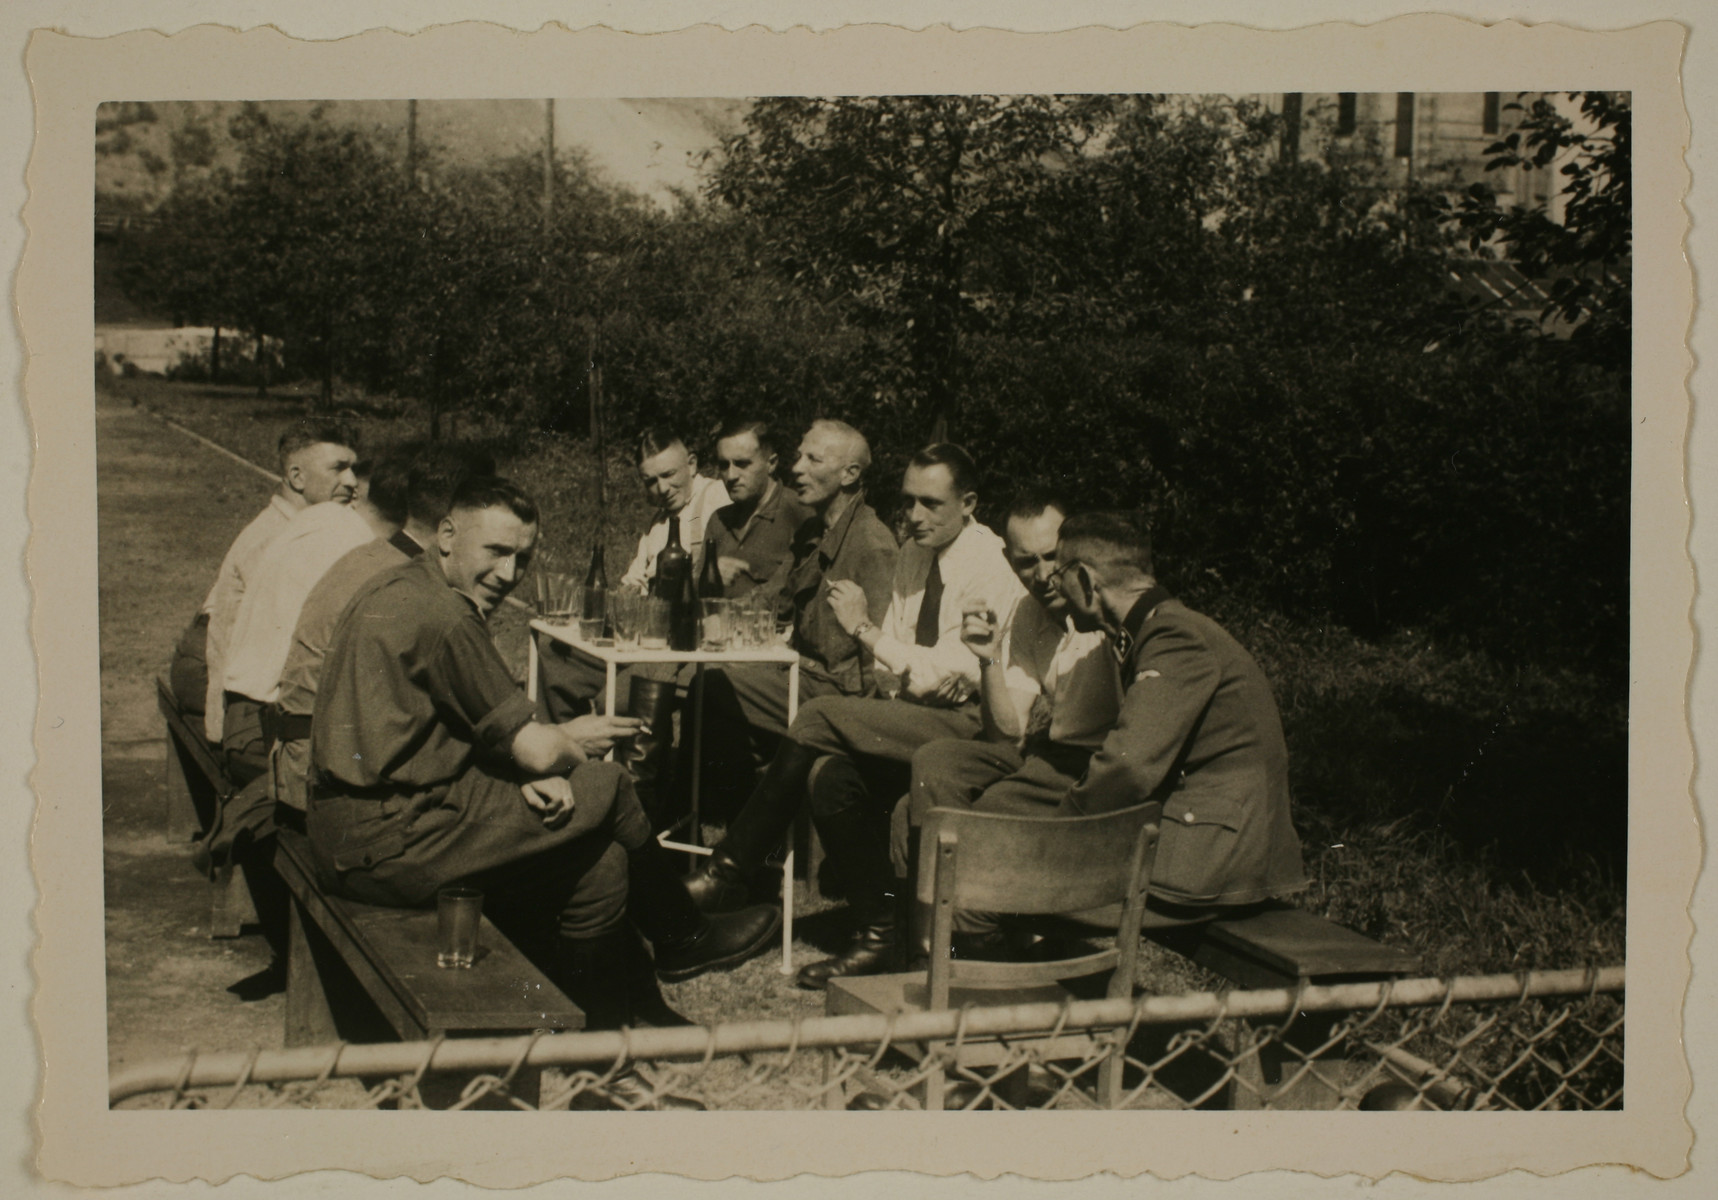 "SS officers, including several SS physicians, sit around a table drinking probably following a visit to coal mine.    The original caption reads ""Nach der Ausfahrt"" (after the outing).  Among those pictured are Karl Hoecker (far left), Dr. Fritz Klein (left hand side, end of table), Dr. Horst Schumann, Gerhard Gerber, Dr. Eduard Wirths (right side of the bench, third from the front) and Dr. Willi Schatz (right side, end)."